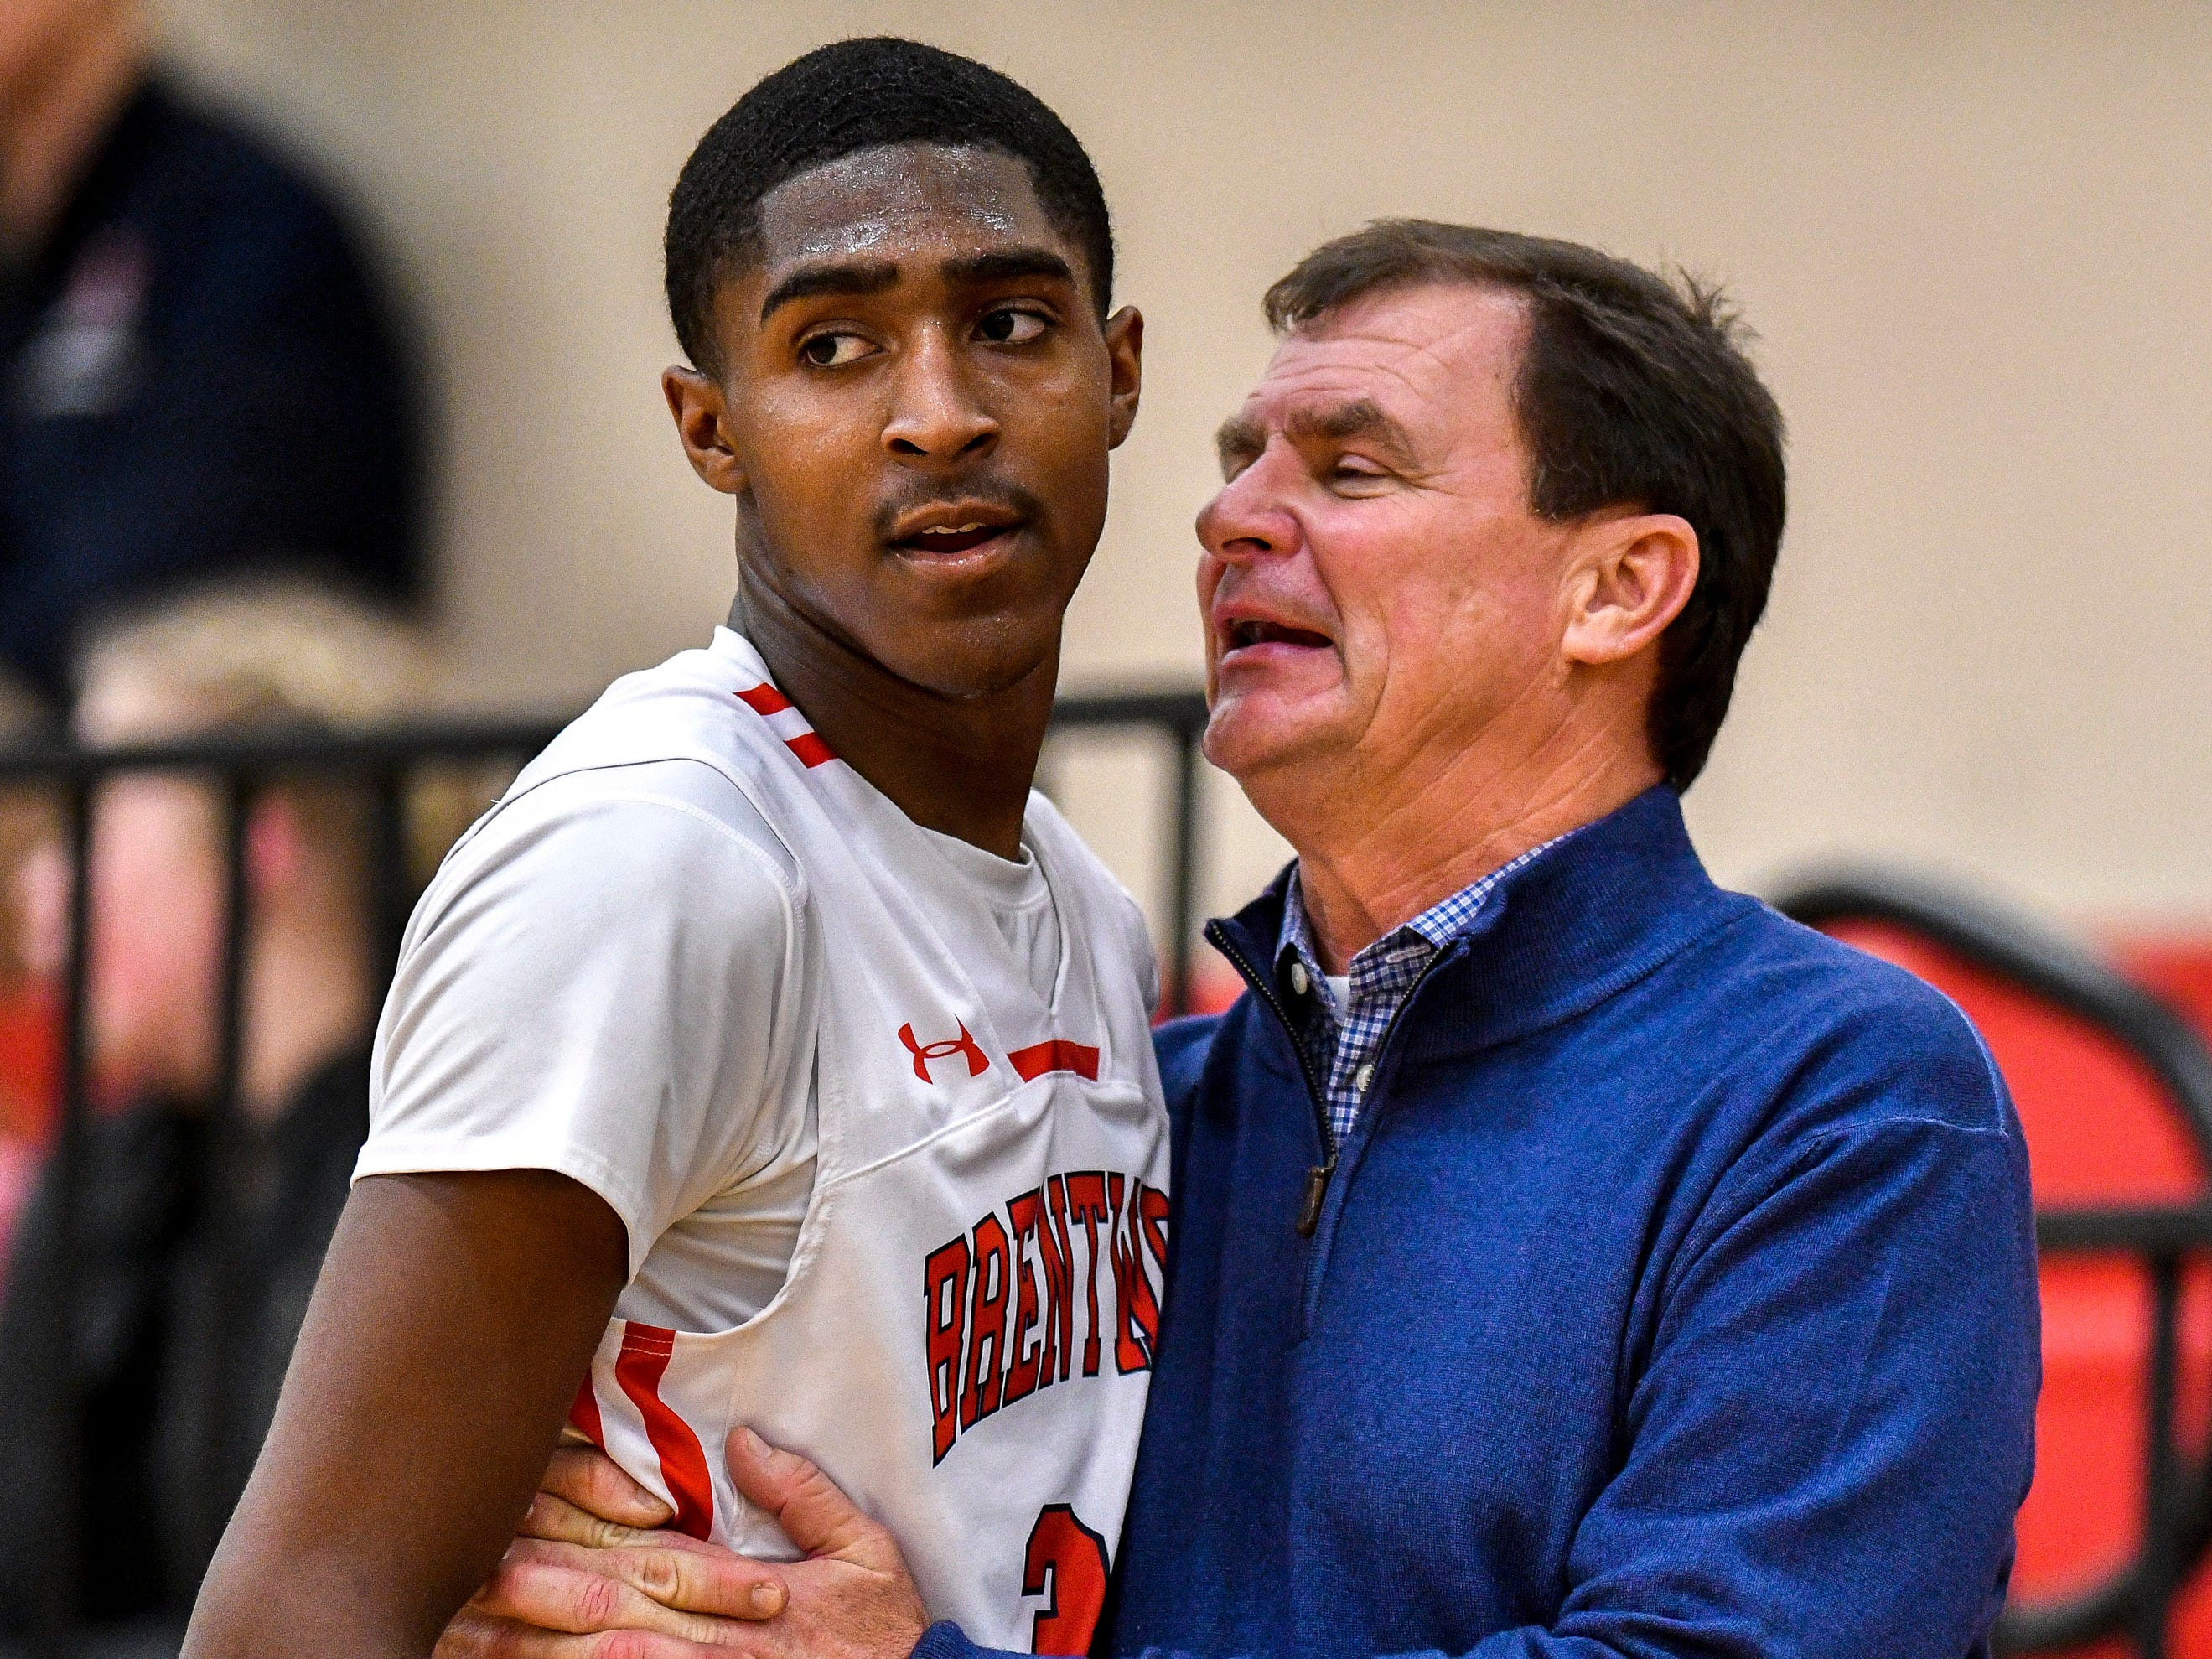 Brentwood Academy's Randy Brady (34) works with head coach Hubie Smith during the second half against Pope John Paul II at Brentwood Academy in Brentwood, Tenn., Friday, Jan. 4, 2019.